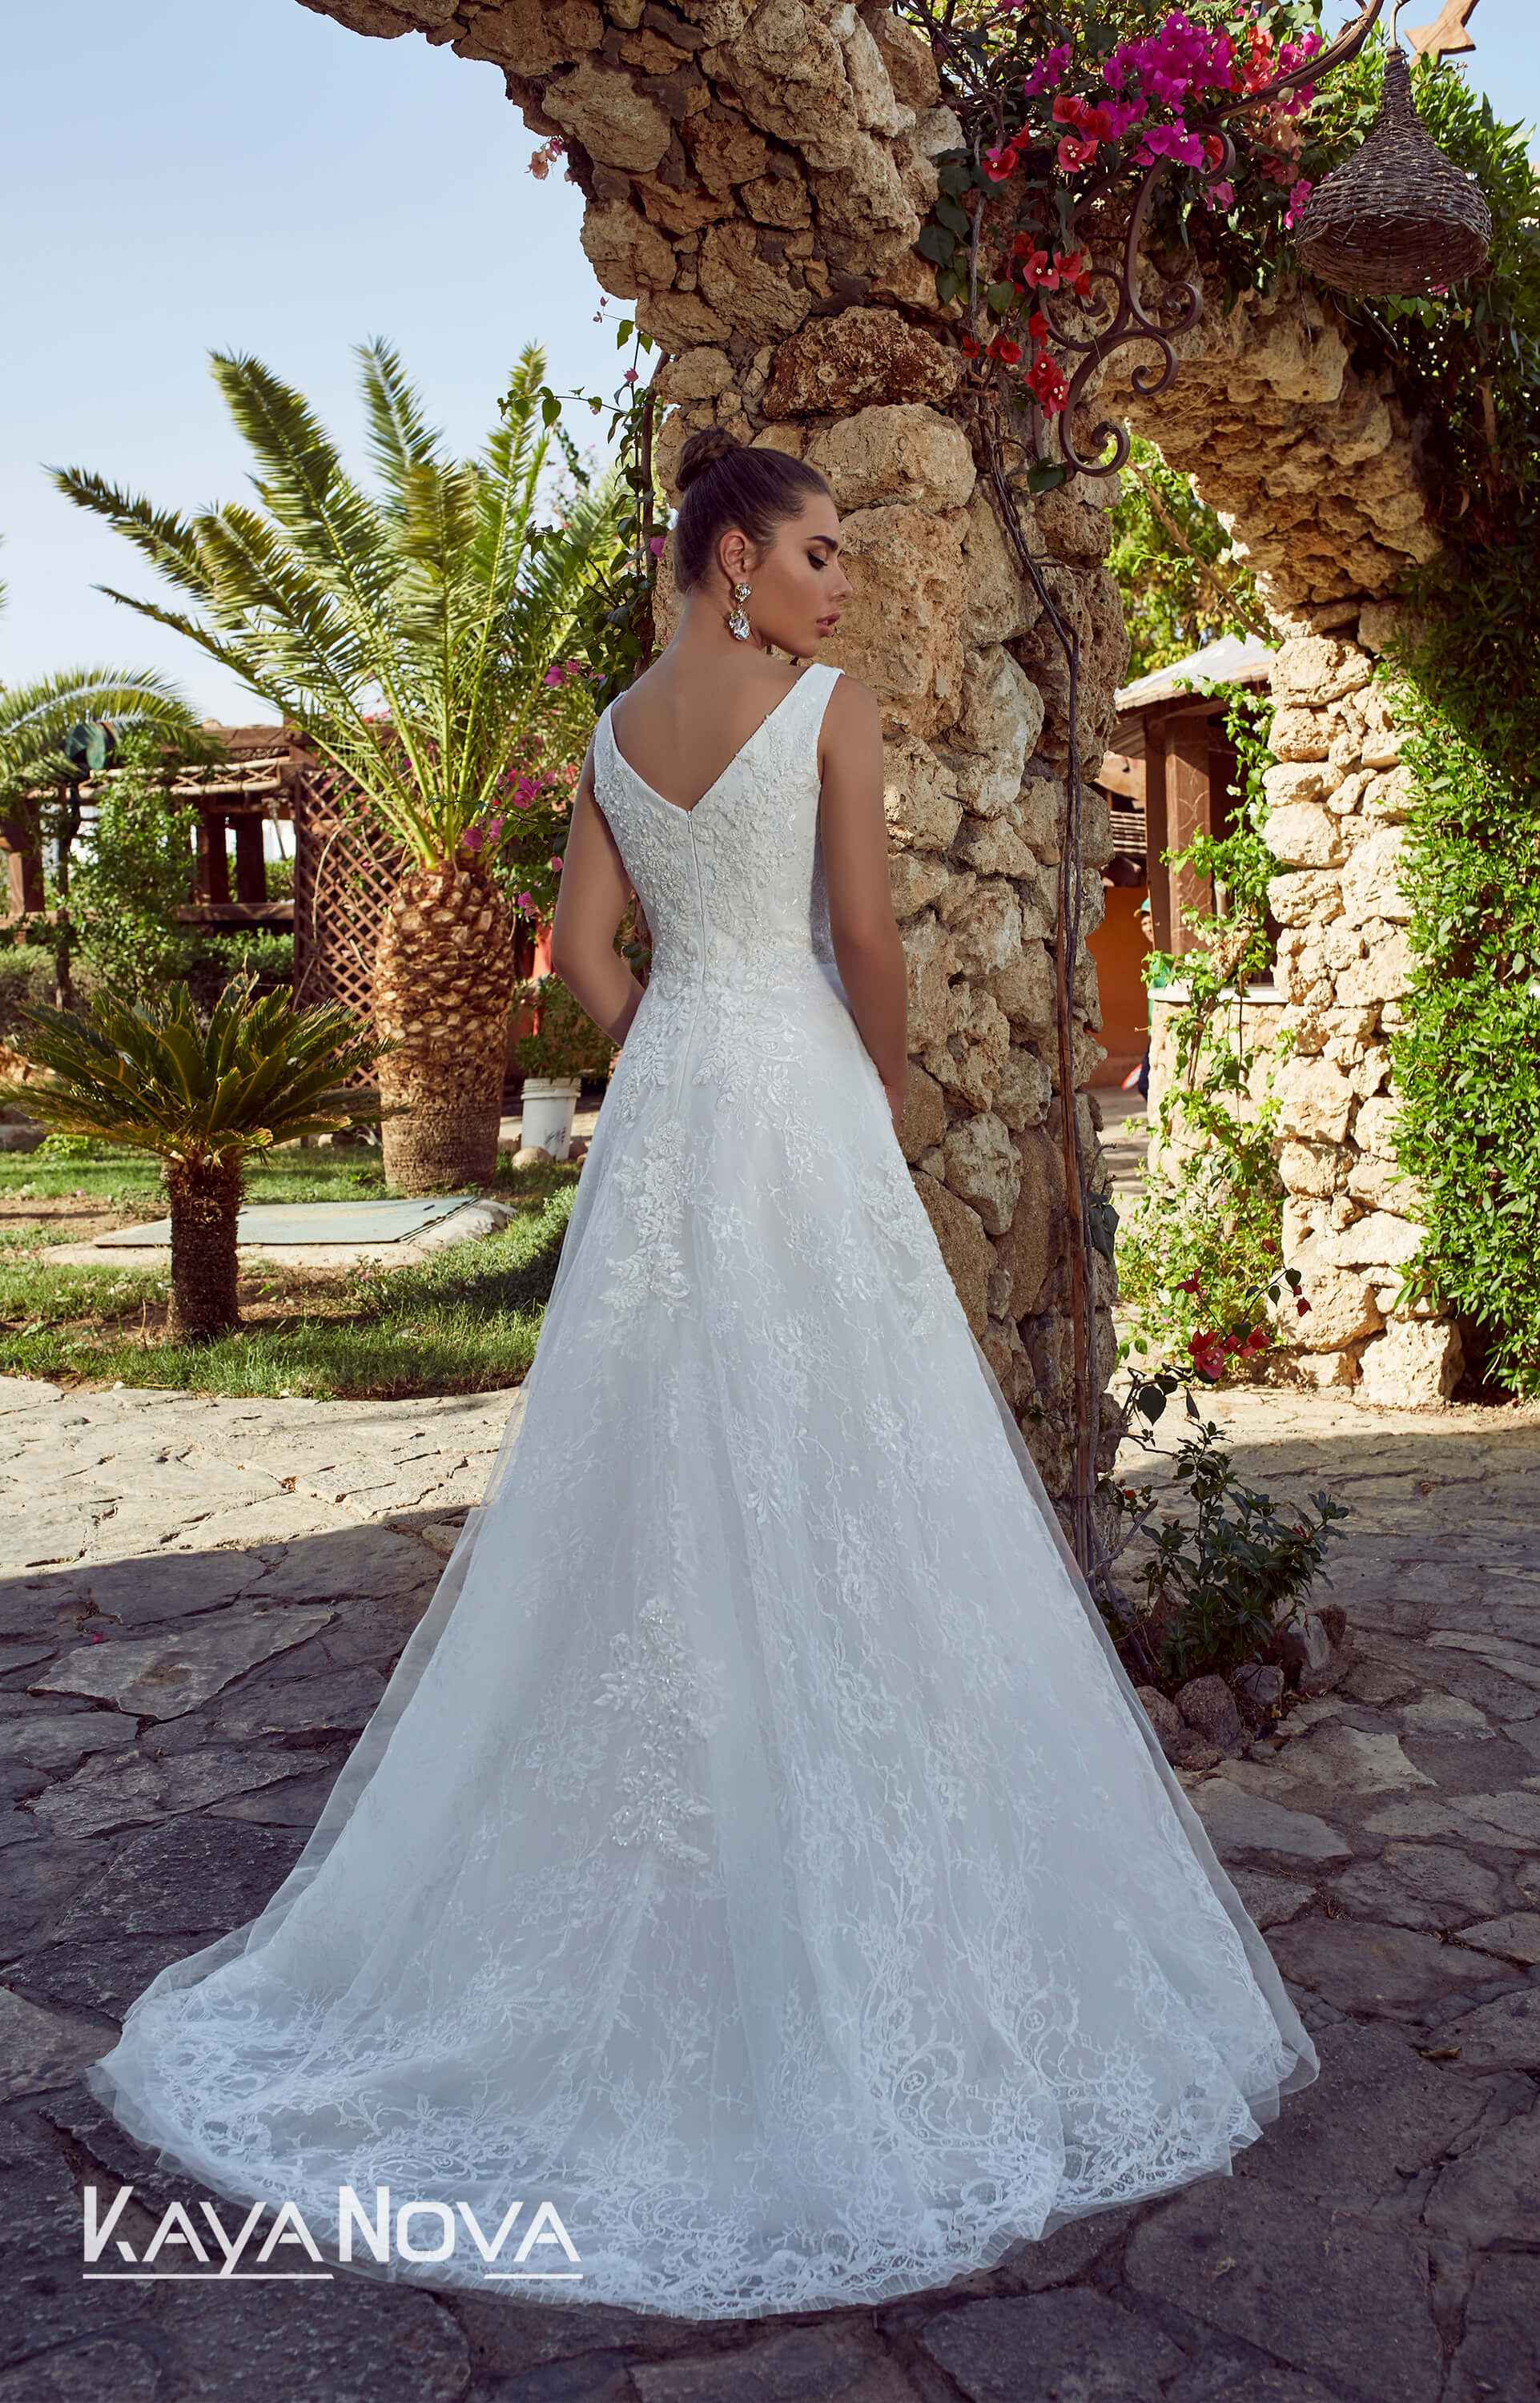 https://kayawedding.com/images/stories/virtuemart/product/Bonita 3.jpg